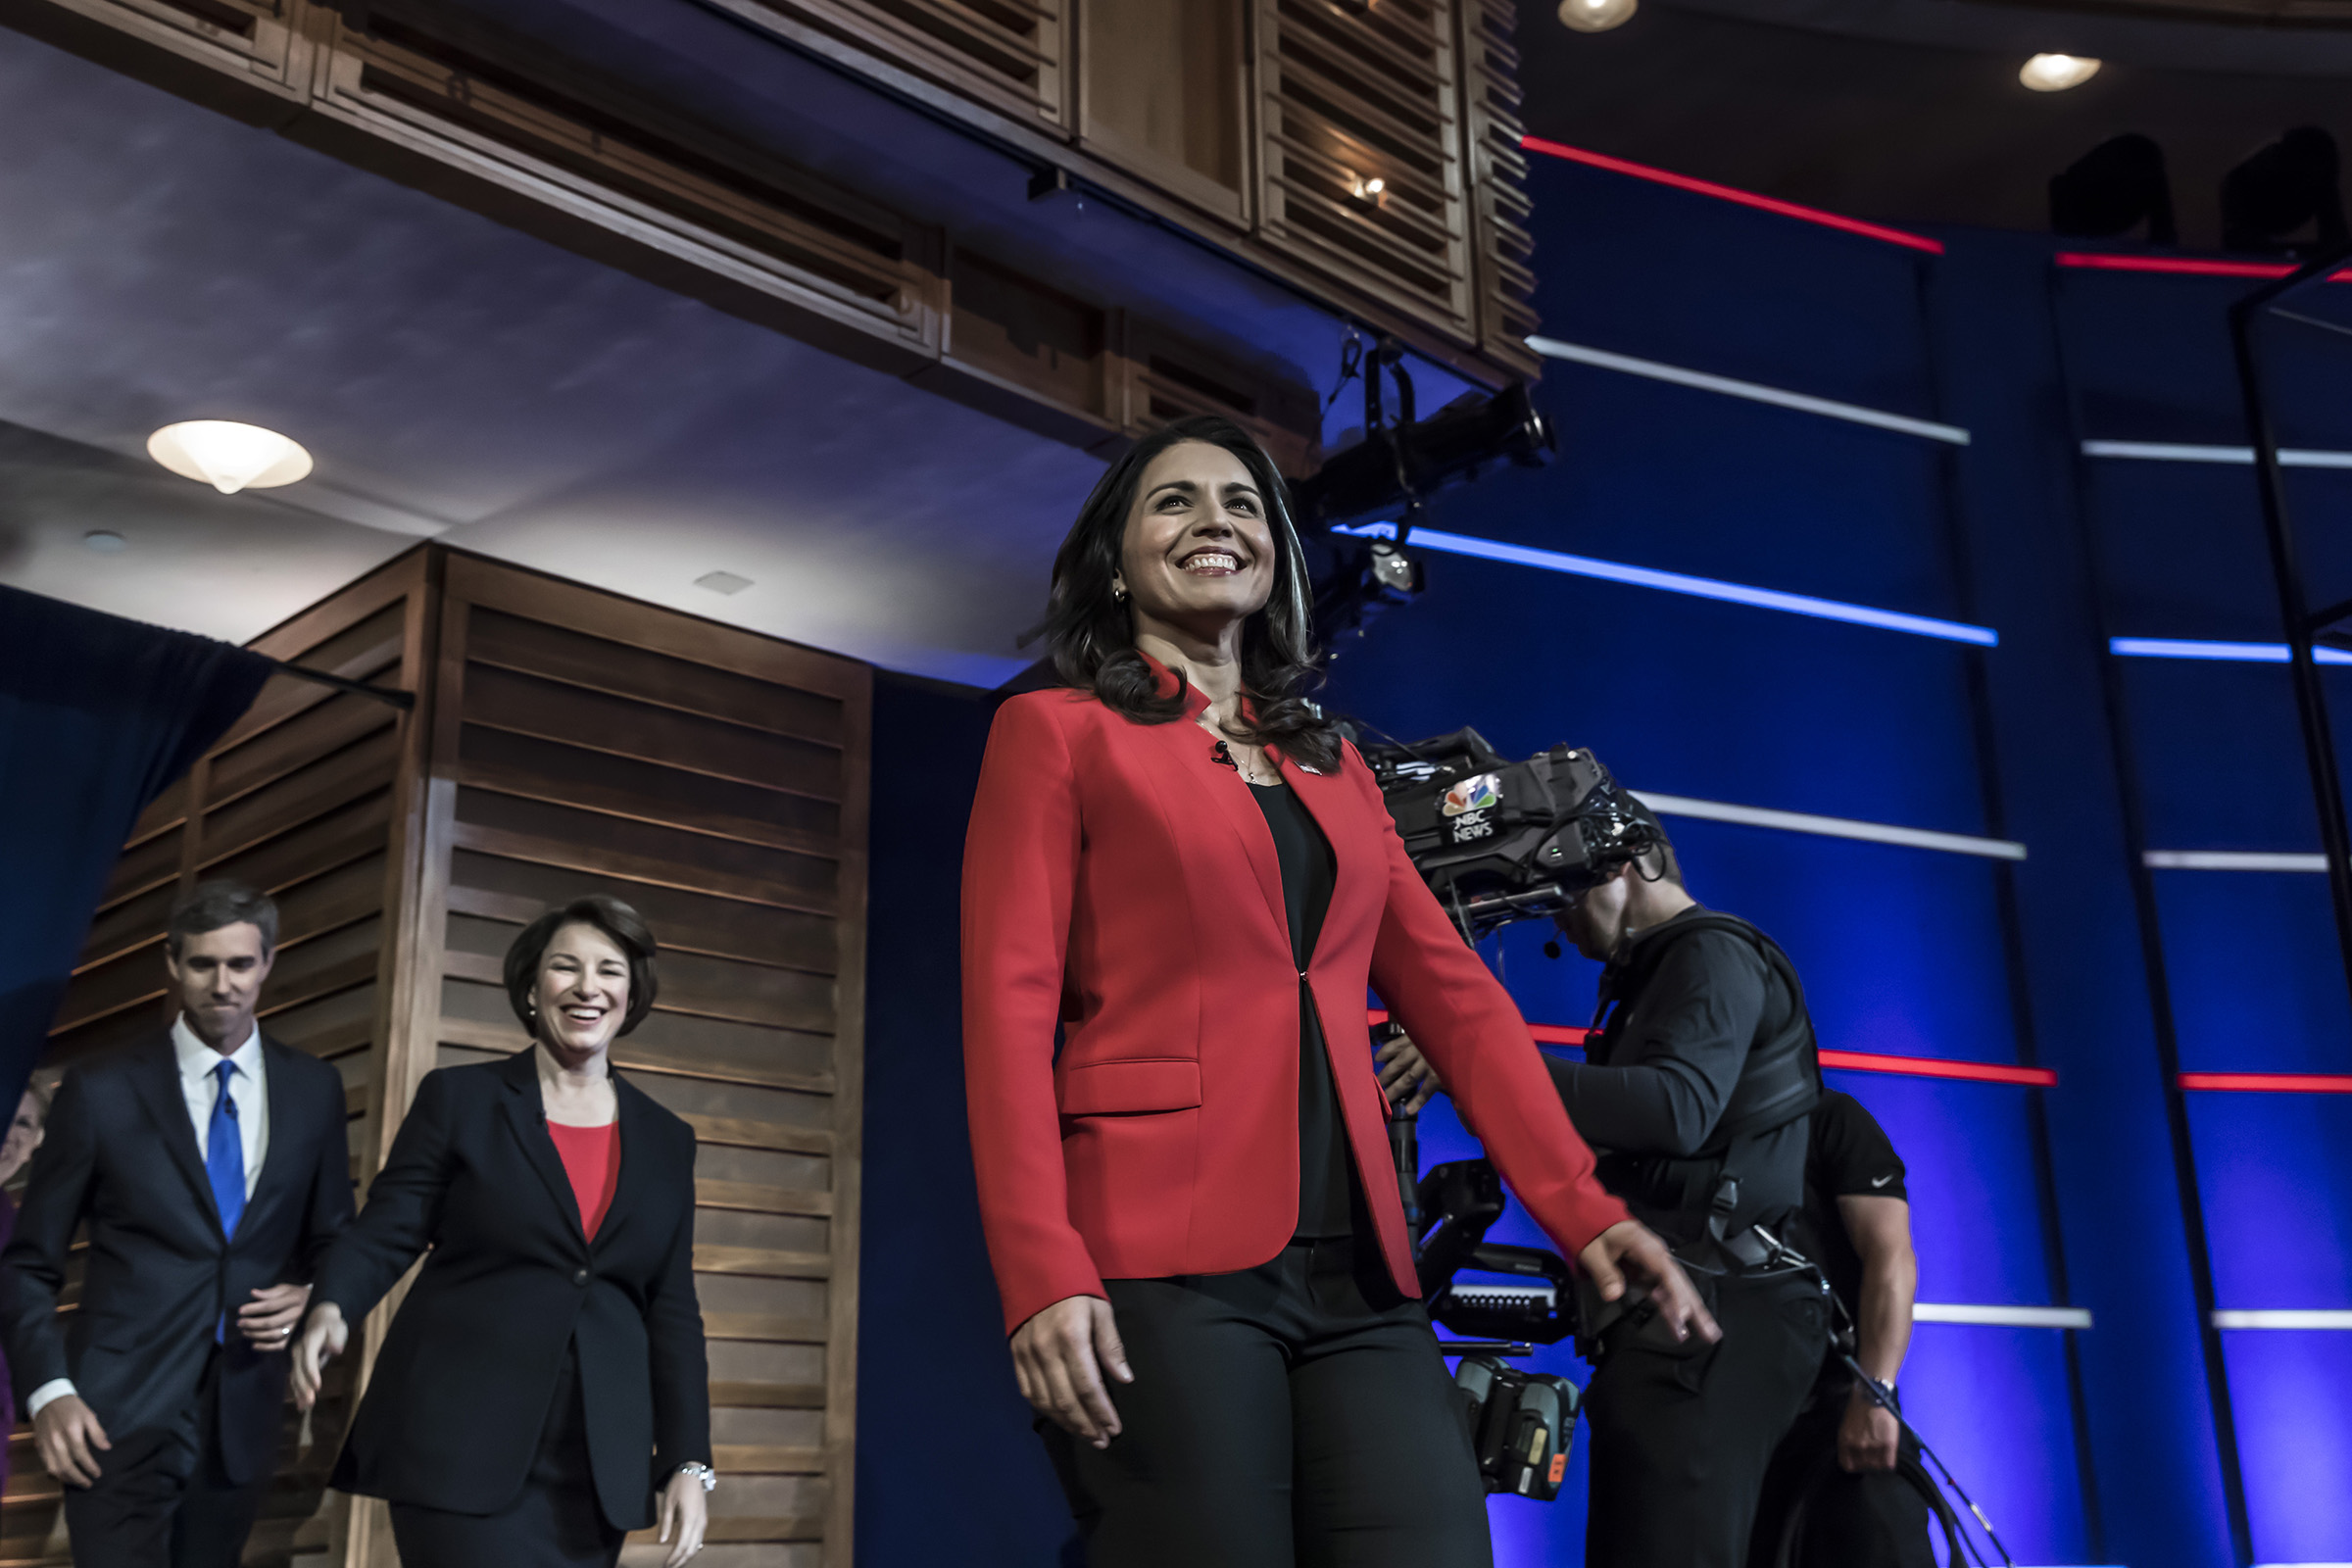 Presidential hopefuls (L-R) Former Texas Rep. Beto O'Rourke, Minnesota Sen. Amy Klobuchar and Hawaii Rep. Tulsi Gabbard arrive onstage for the first night of the Democratic presidential debate on June 26, 2019 in Miami, Florida.